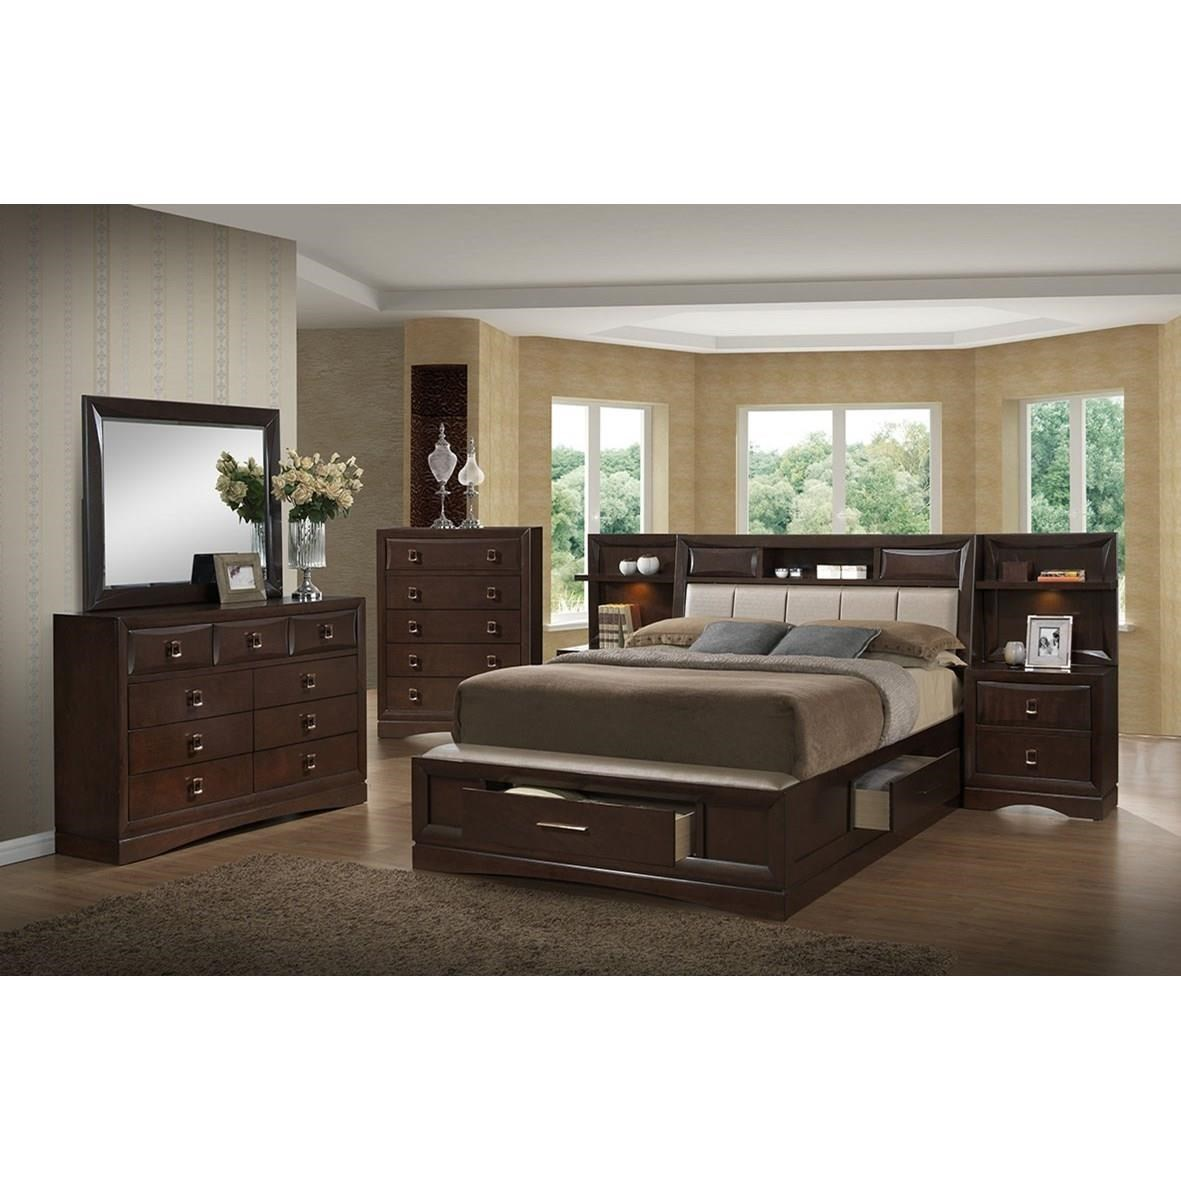 Captivating Holland House FranklinQueen 6 Piece Bedroom Group